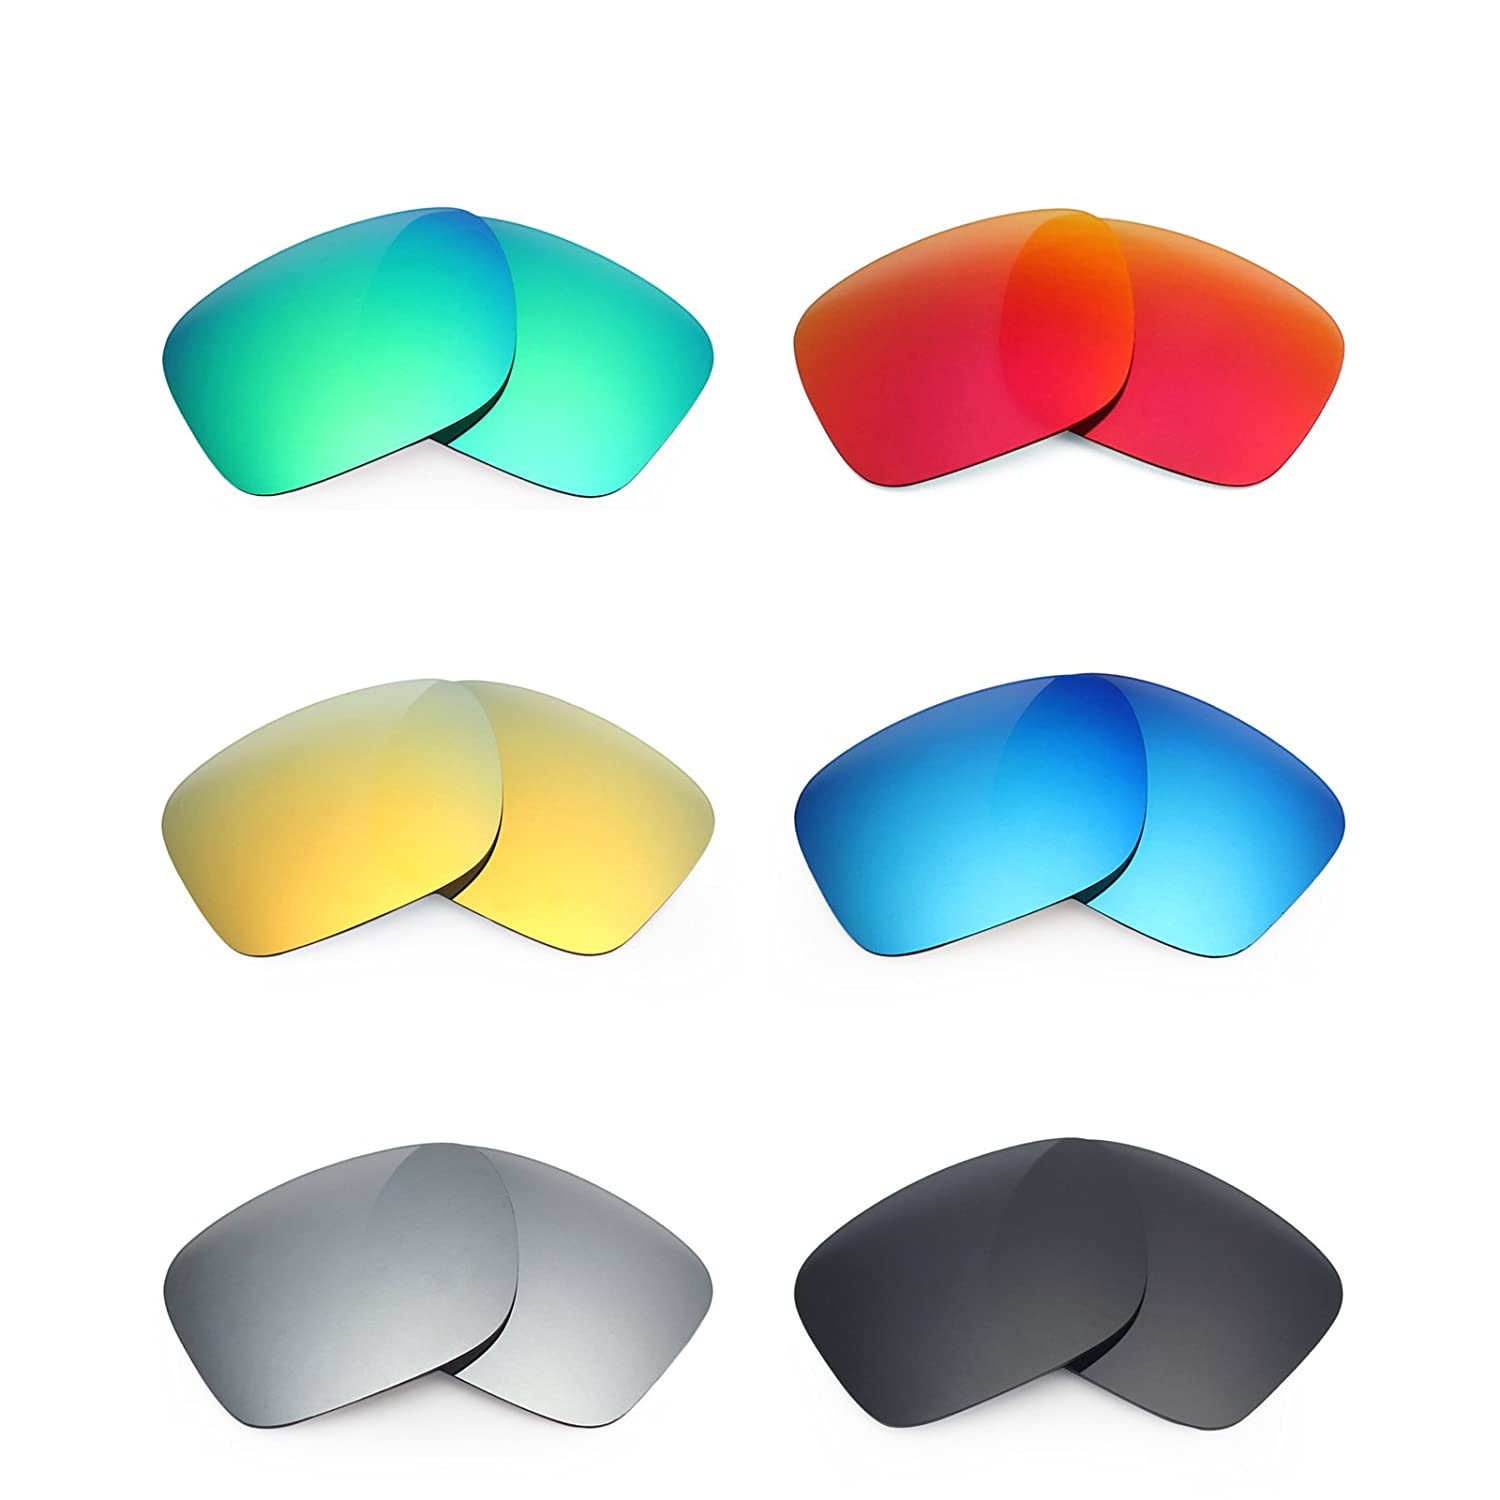 463e6fa3c39 Details about Replacement Lenses Polarized For Oakley Holbrook Sunglasses  Multi-Colours HAWOIG